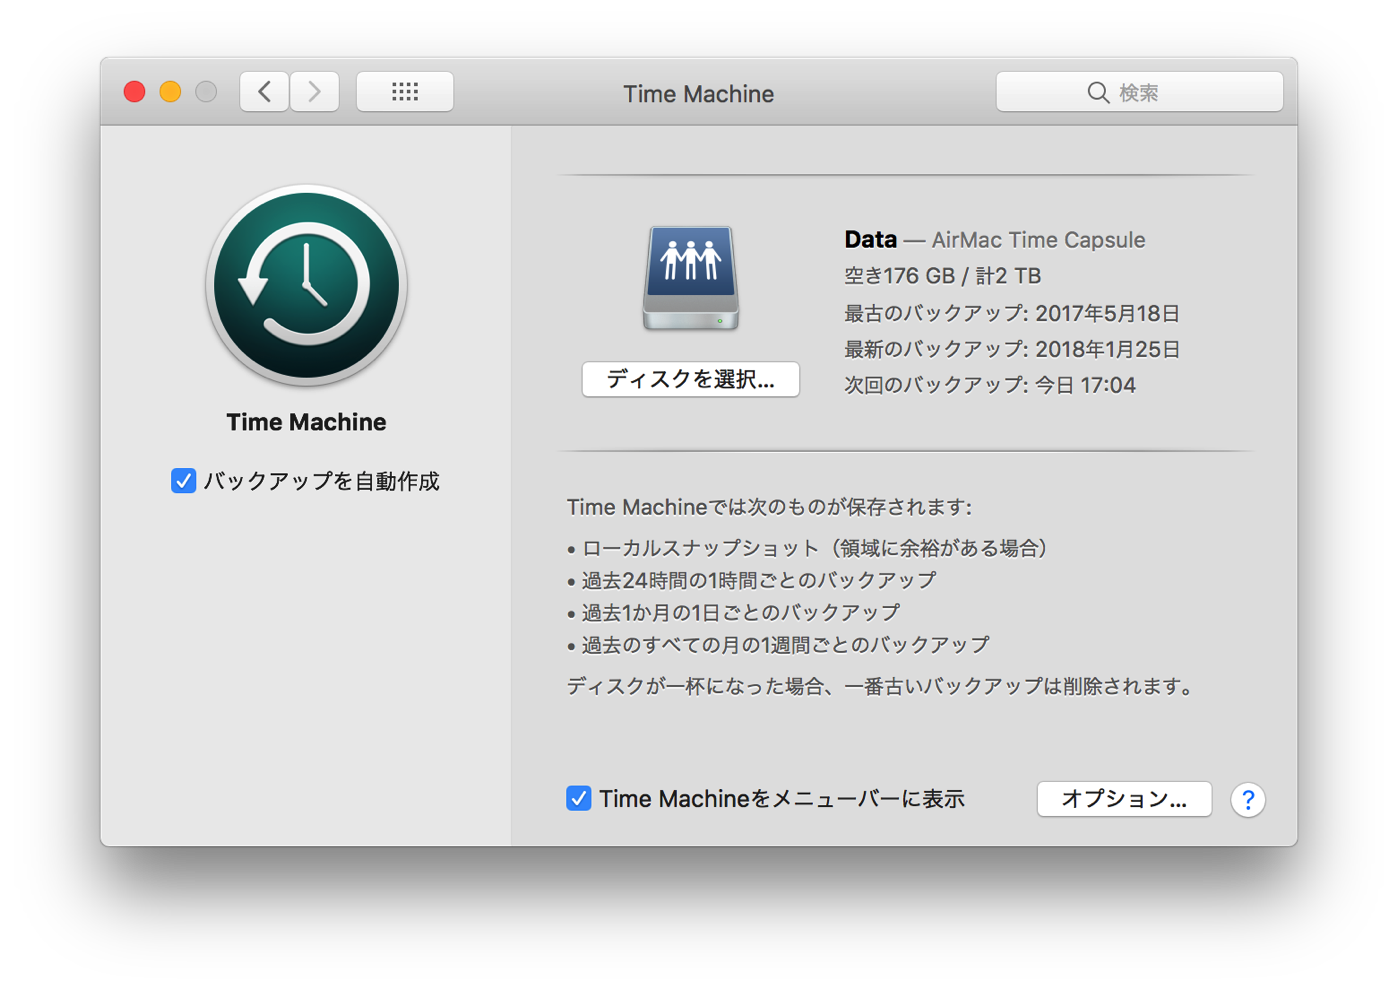 AirMac Time Capsule−1